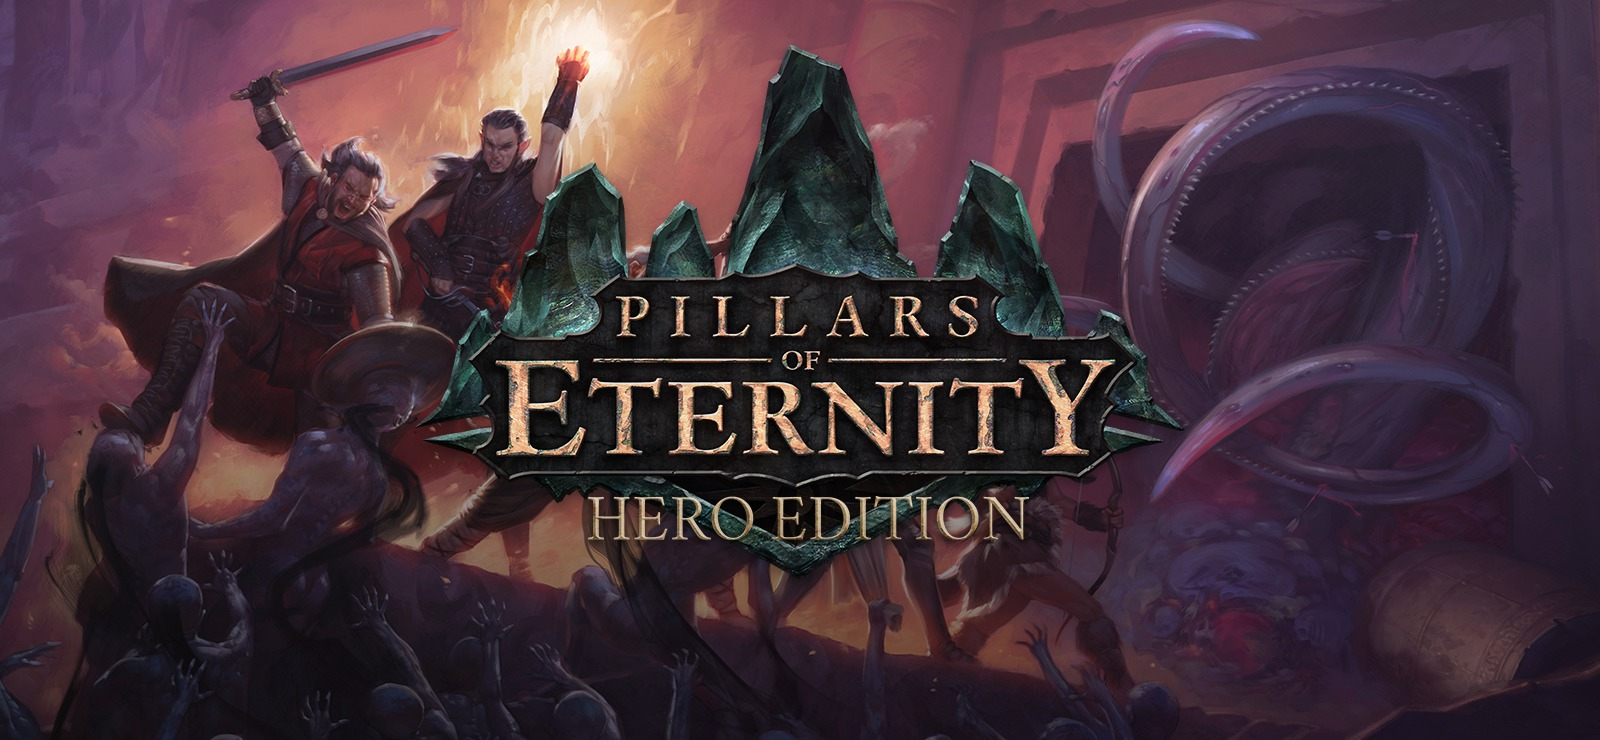 Pillars of Eternity (Steam key RU)